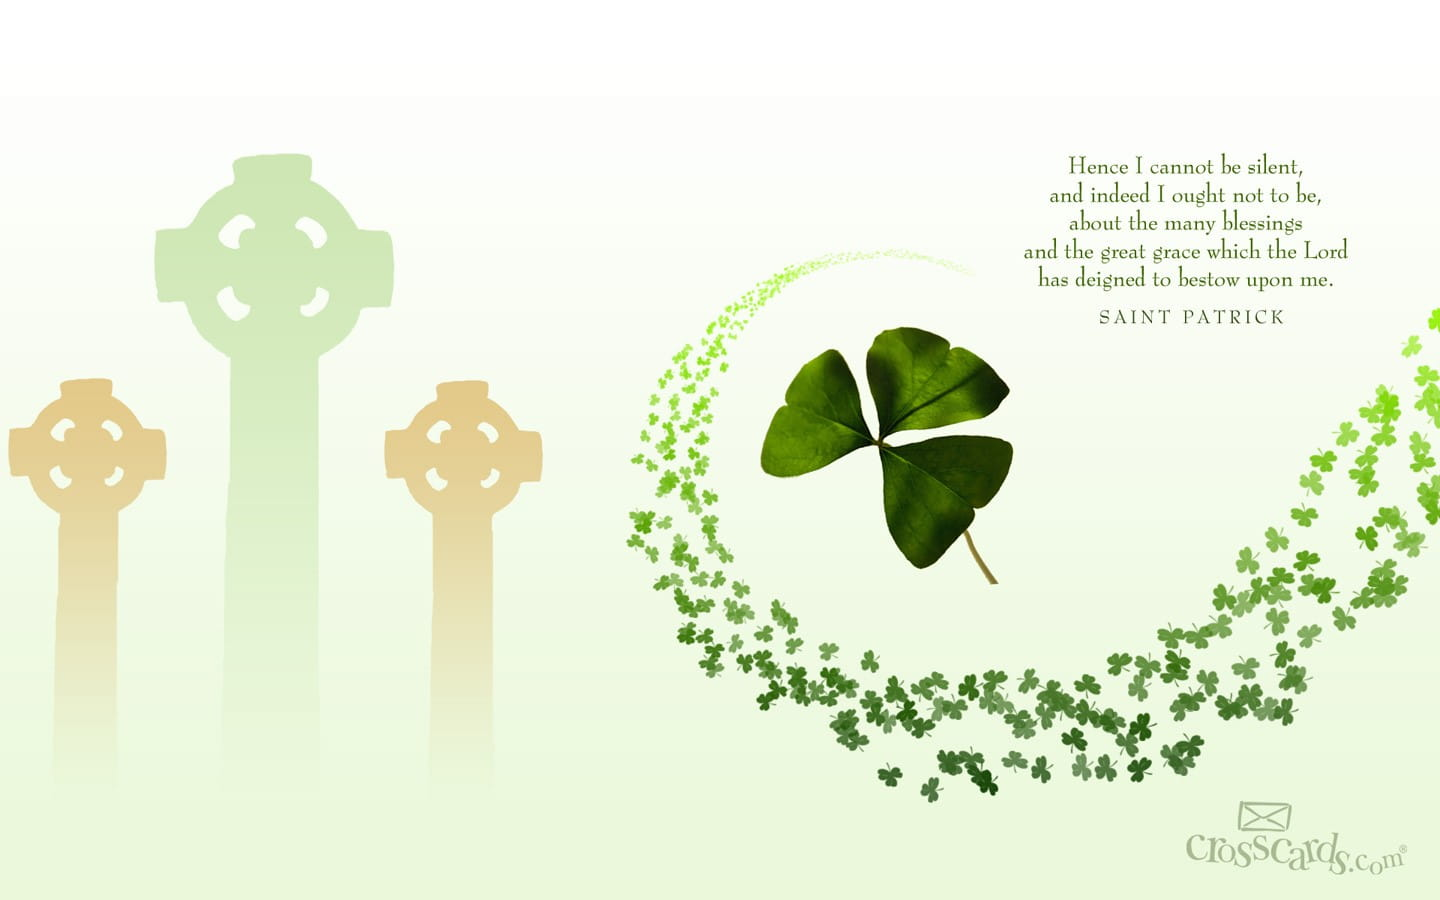 St patrick 39 s day desktop wallpaper free seasons computer and mobile backgrounds - Saint patricks day wallpaper free ...